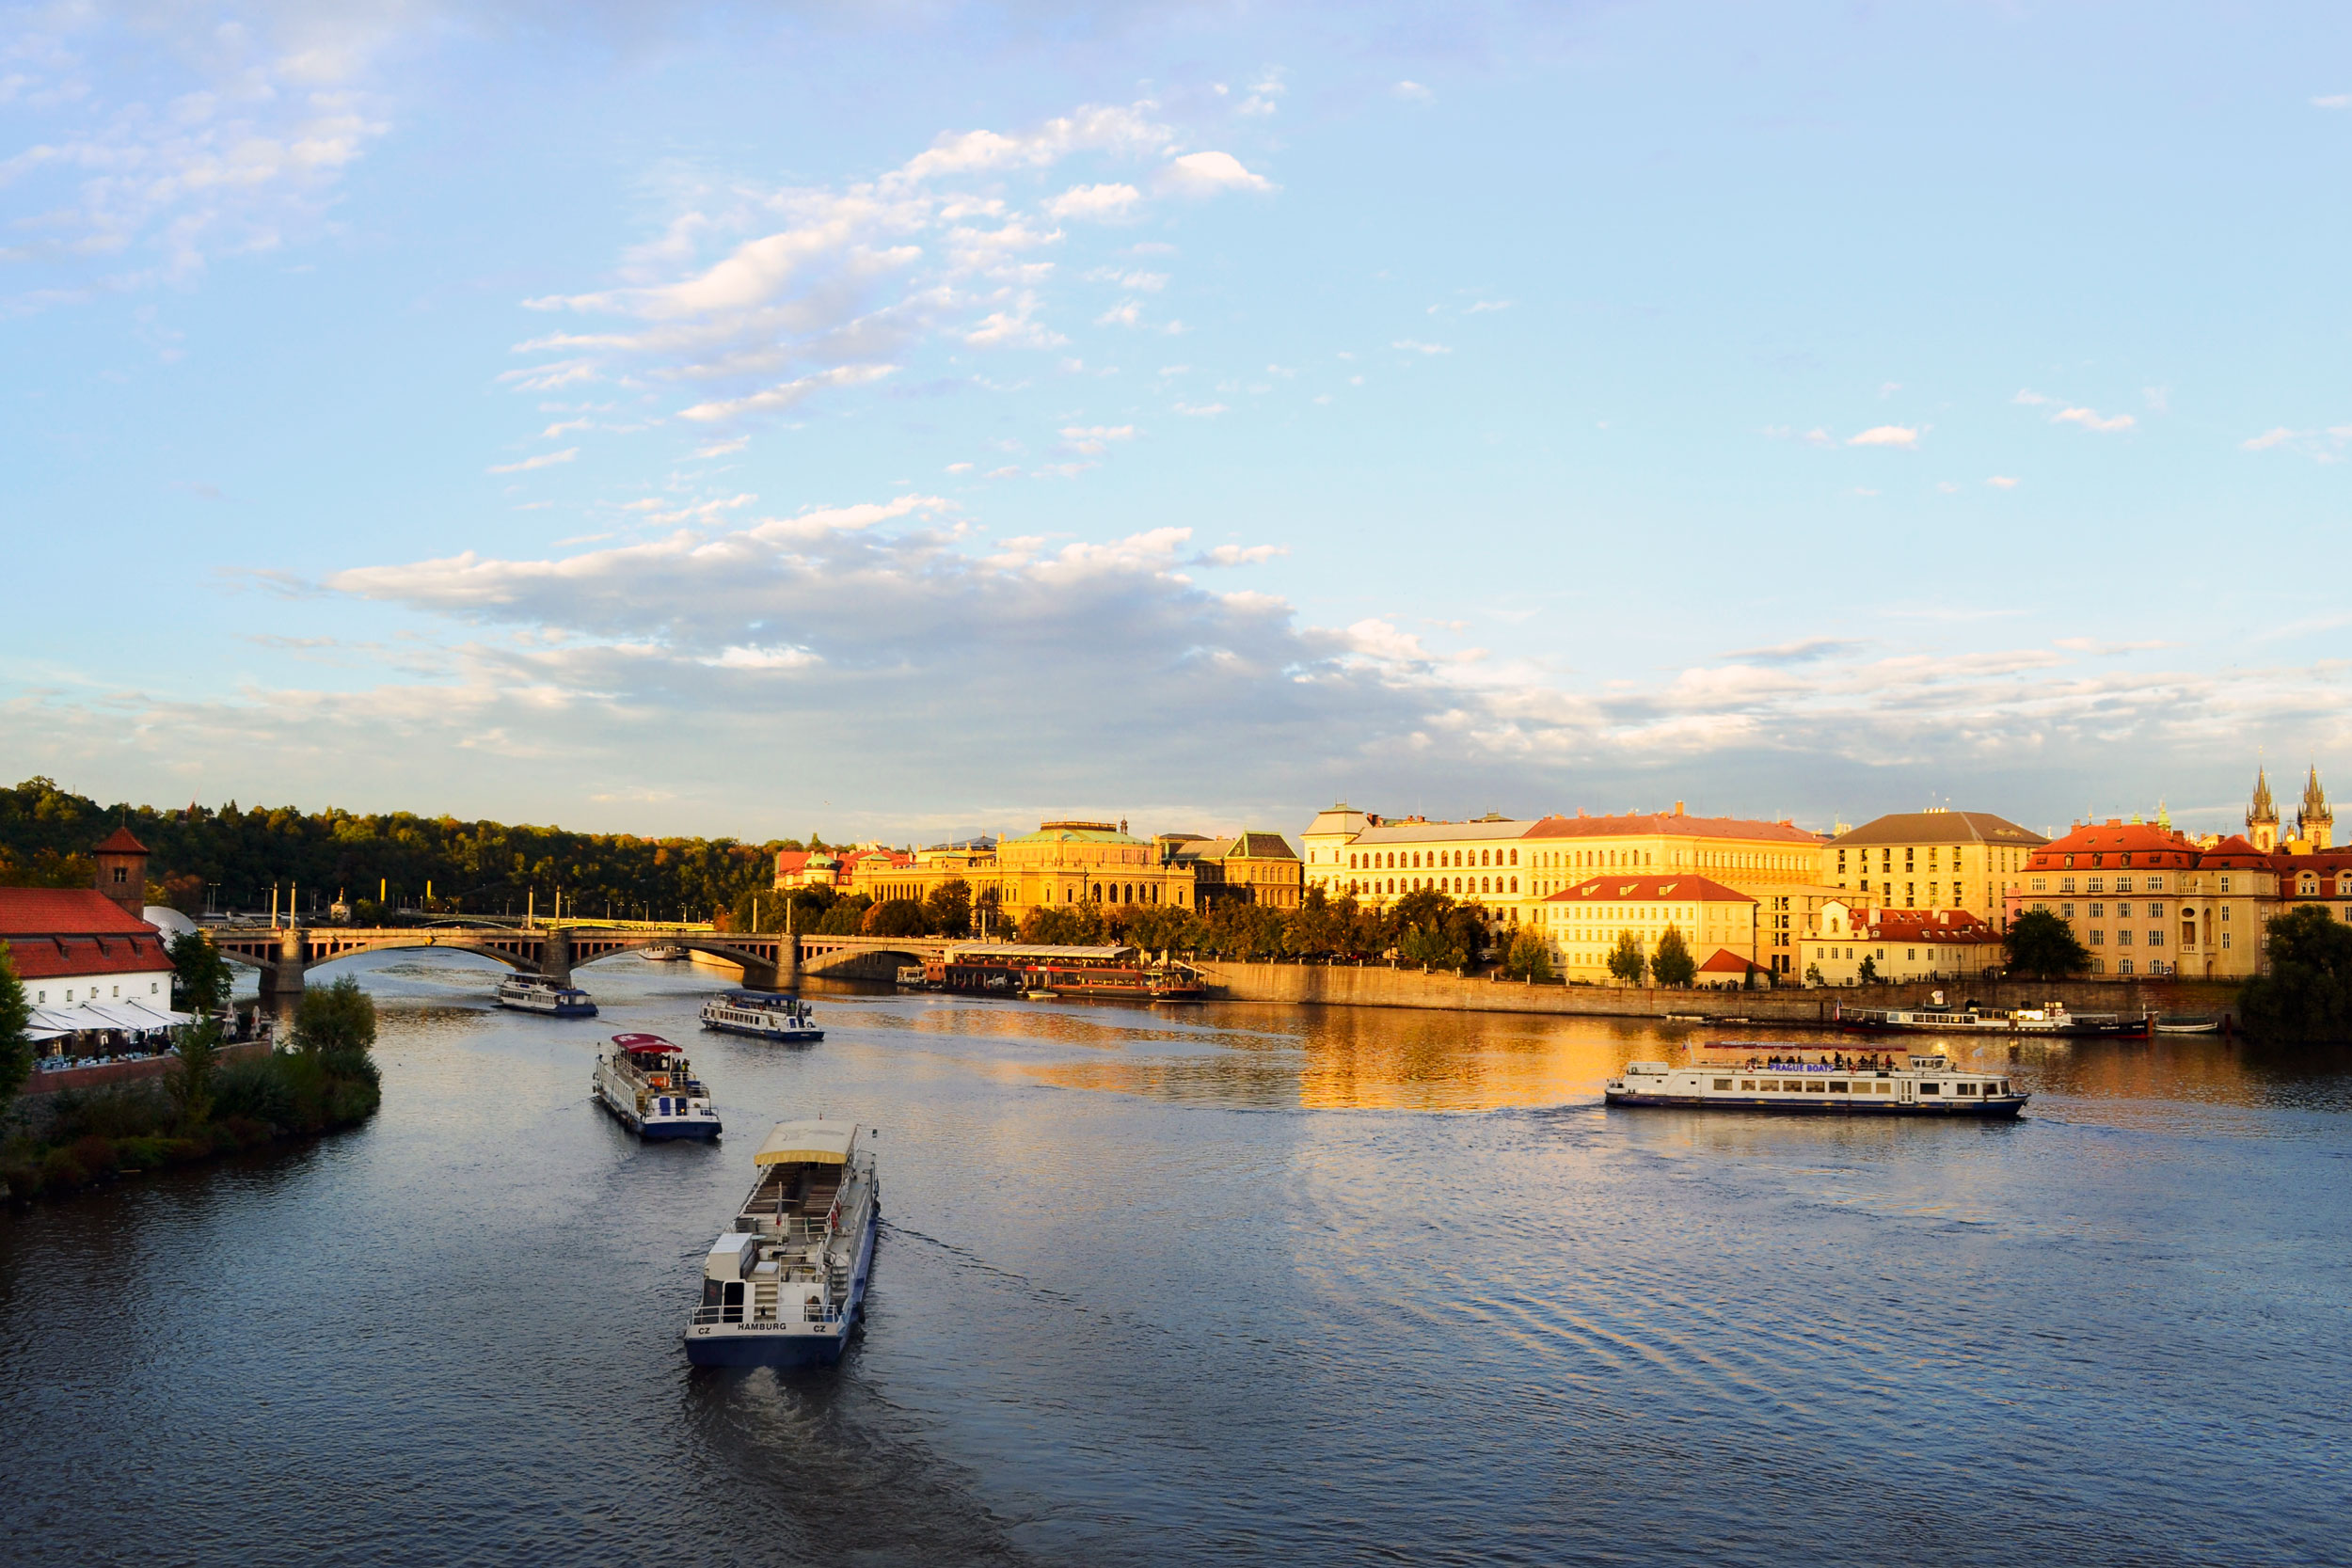 Another view from the Charles Bridge at sunset